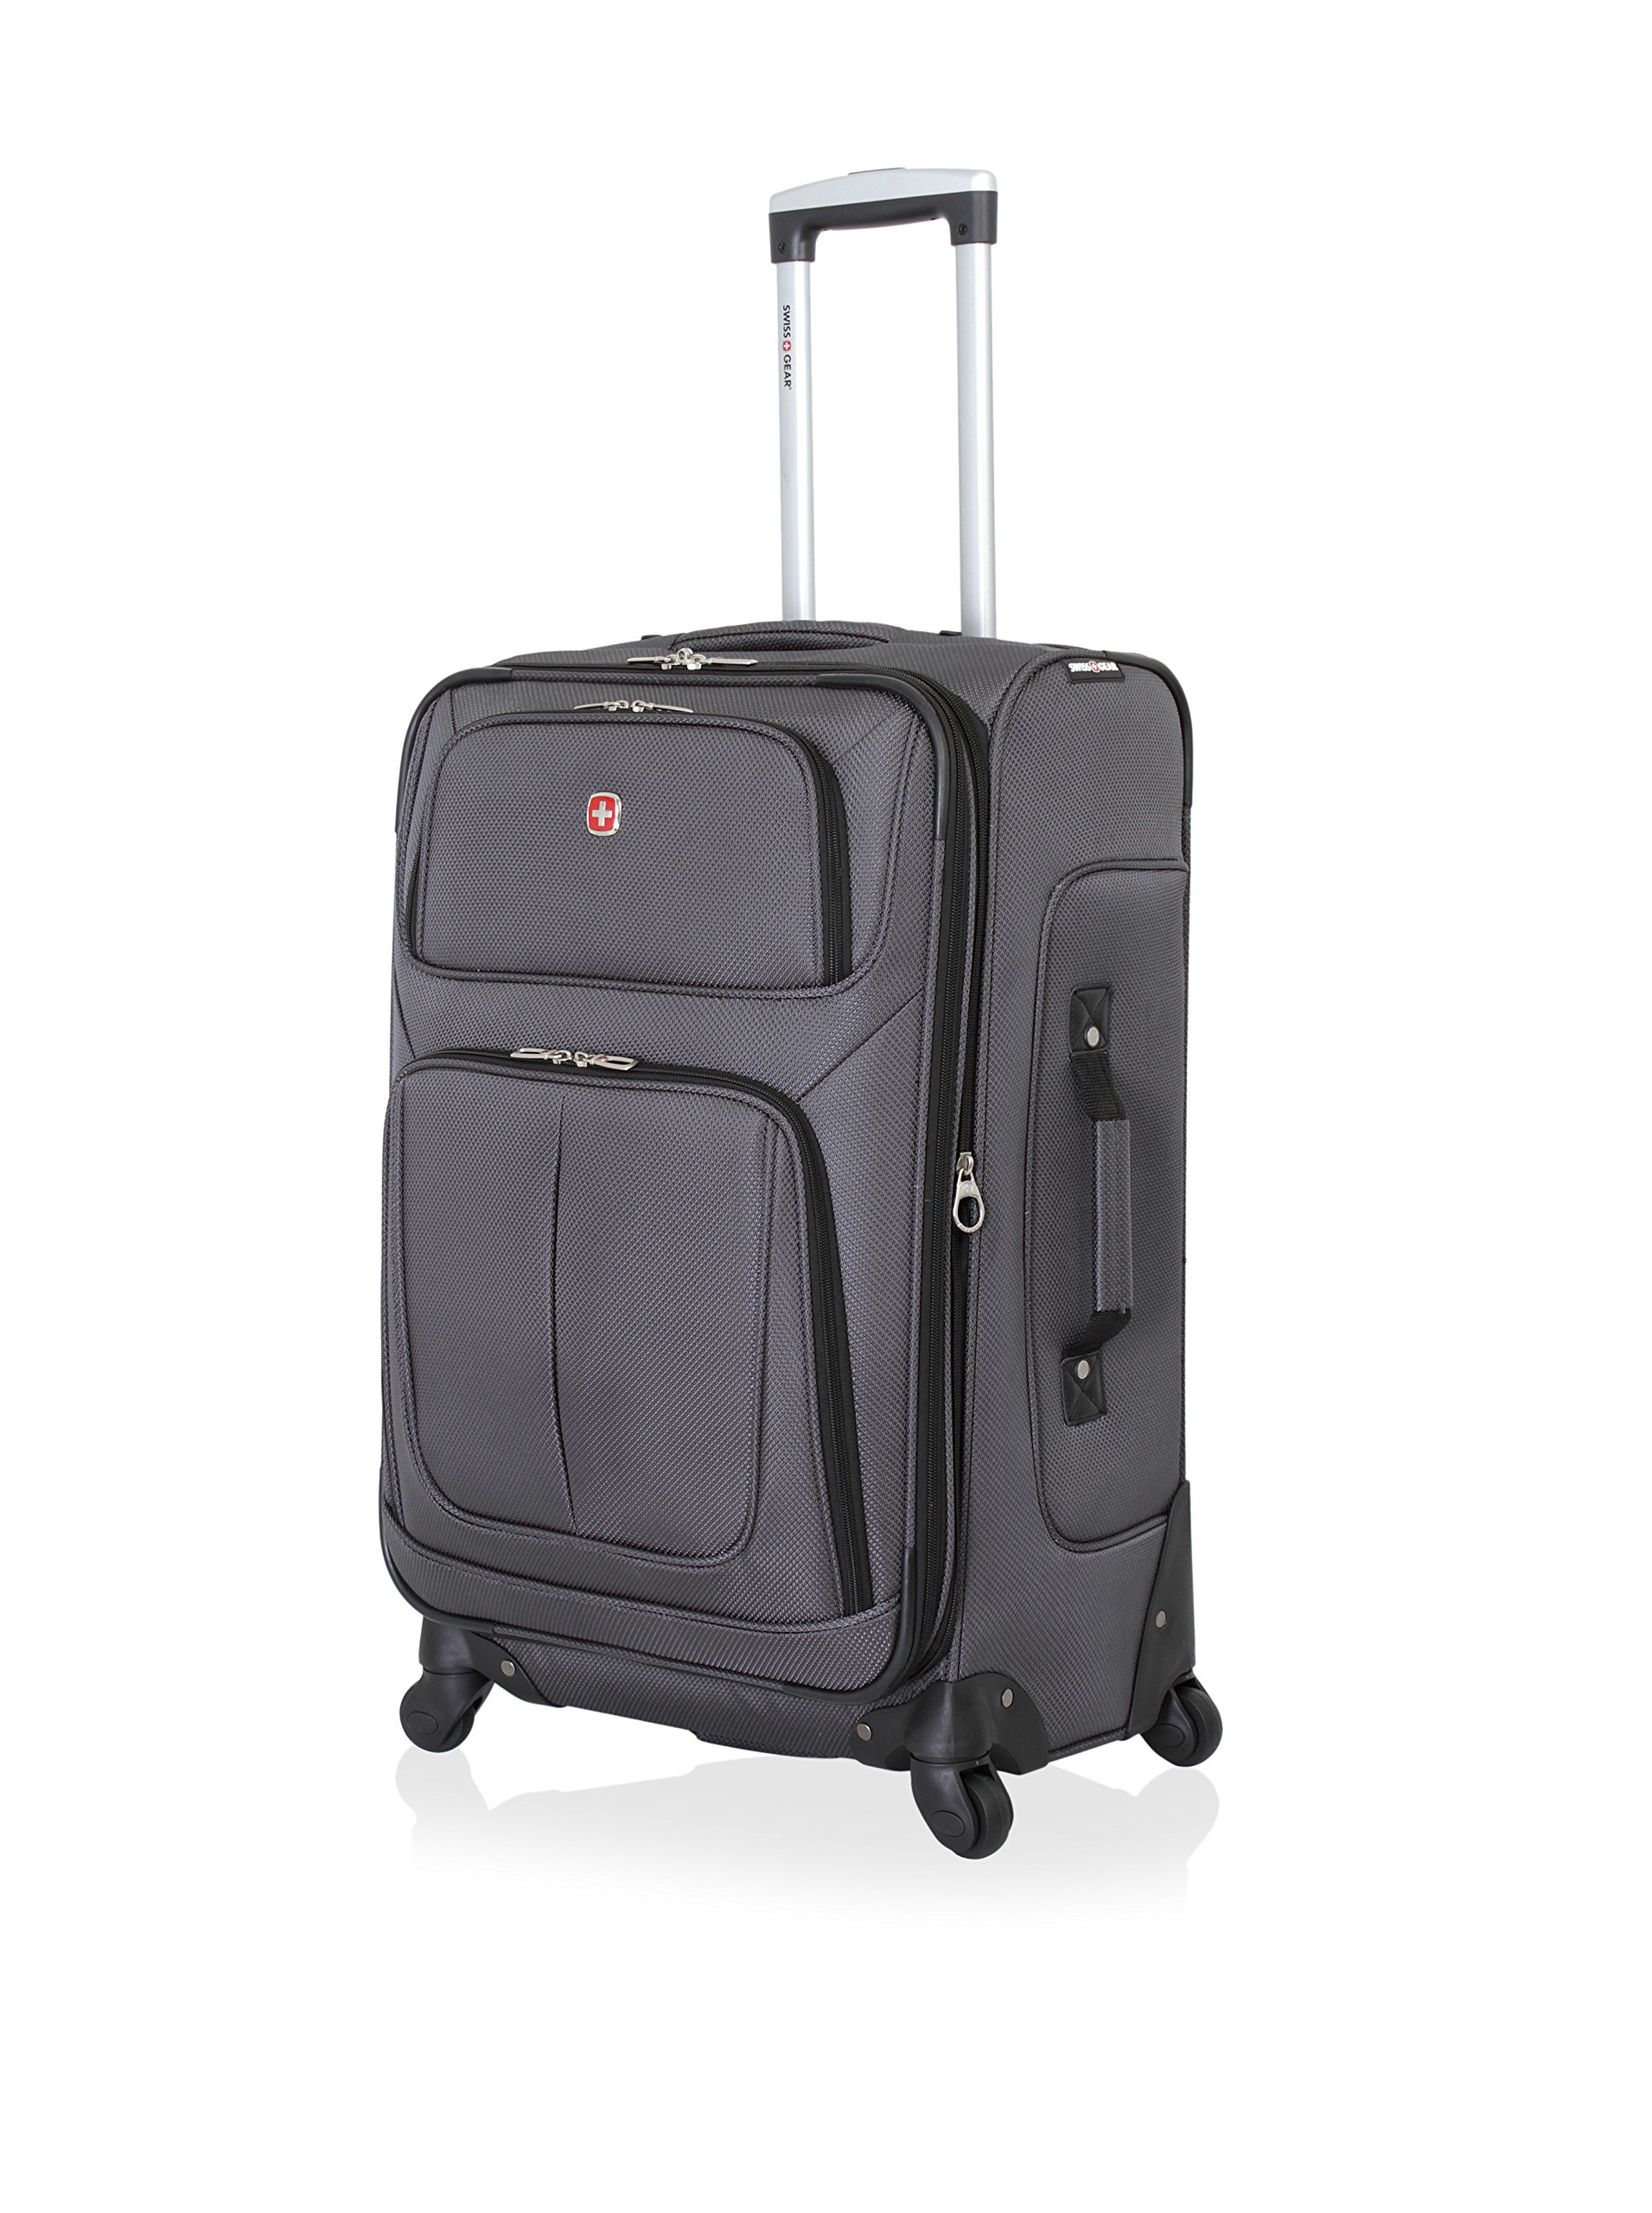 SwissGear Sion Spinner Luggage 25'', Dark Grey by SwissGear